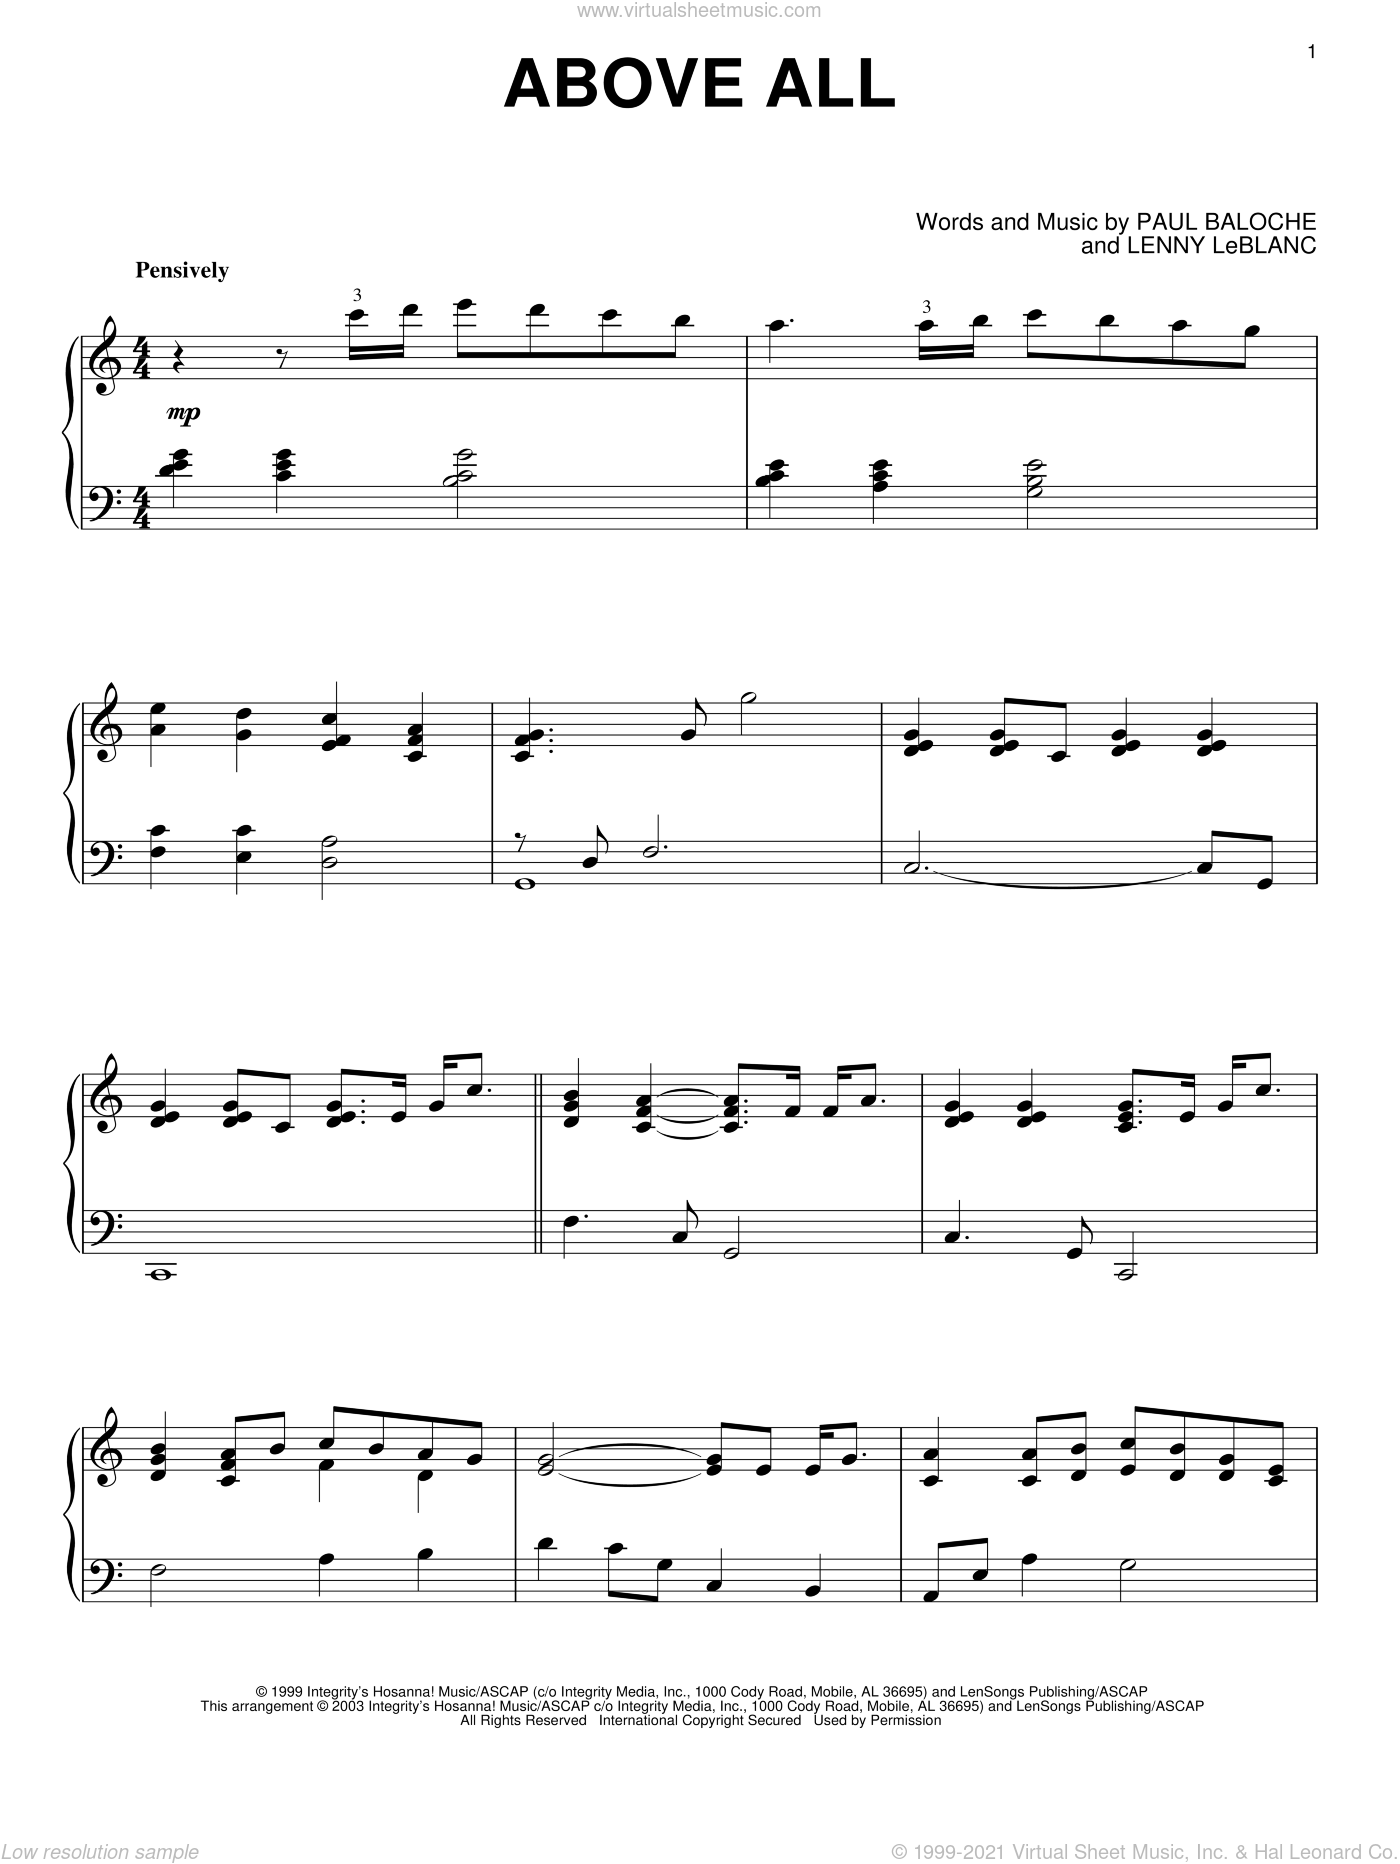 Above All, (intermediate) sheet music for piano solo by Paul Baloche and Lenny LeBlanc, intermediate